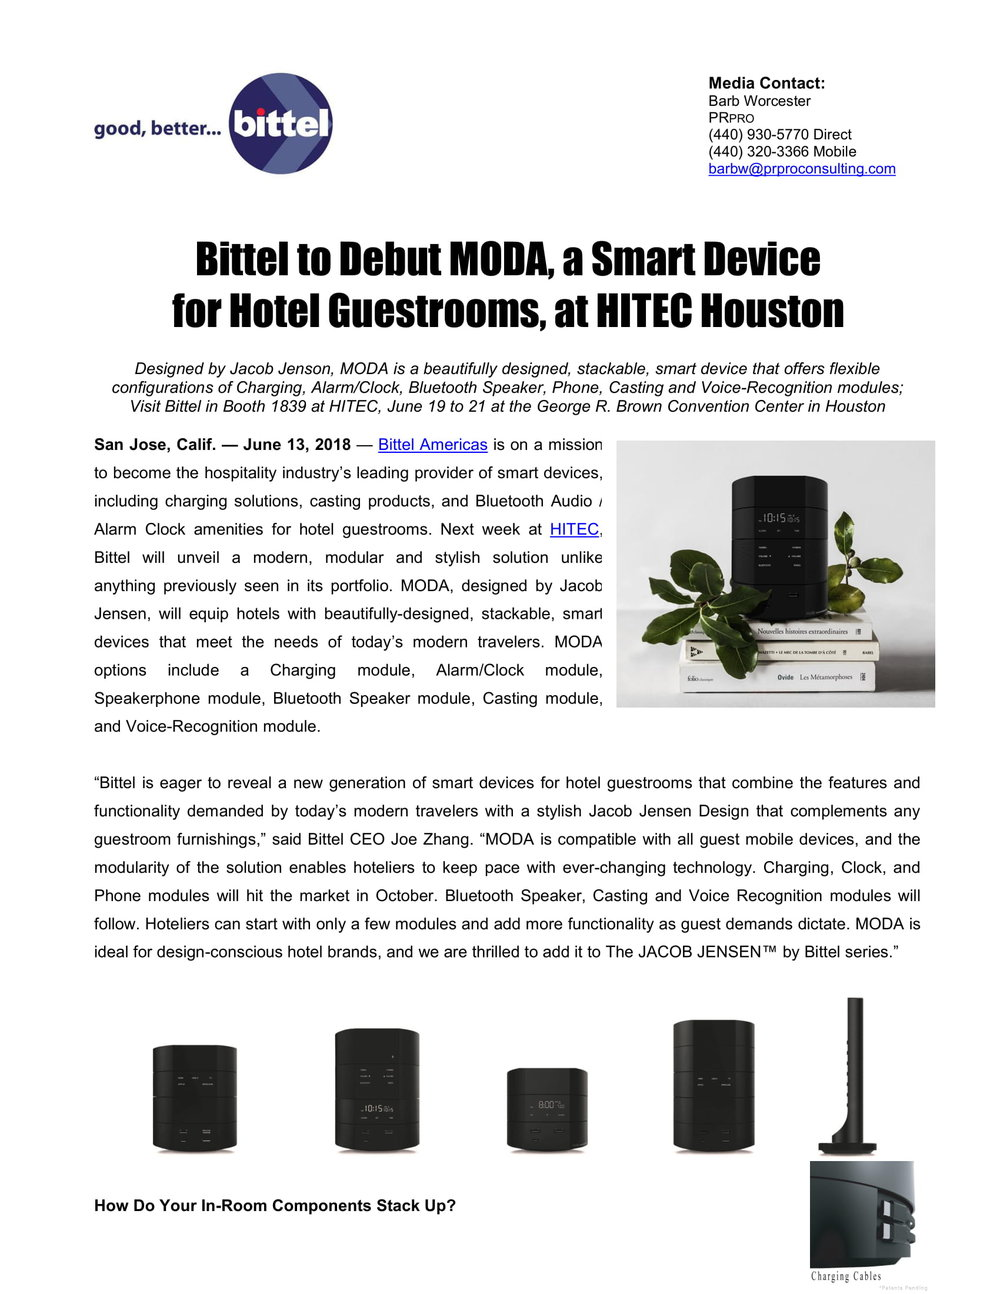 FINAL Bittel Debuts MODA at HITEC Houston-1.jpg